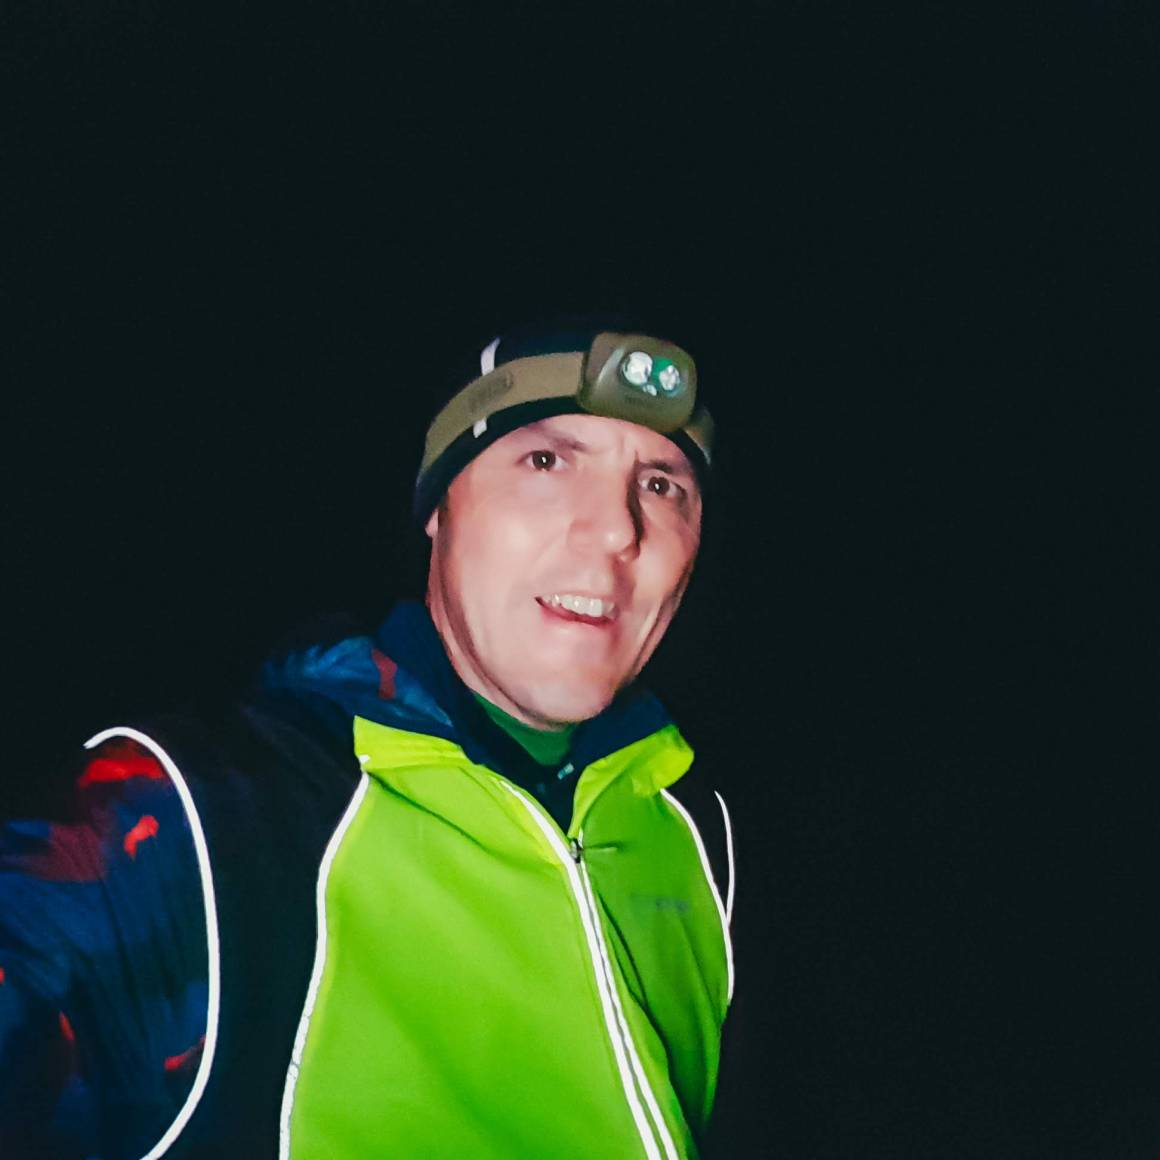 running in the dark - the Yorkshire dad of 4